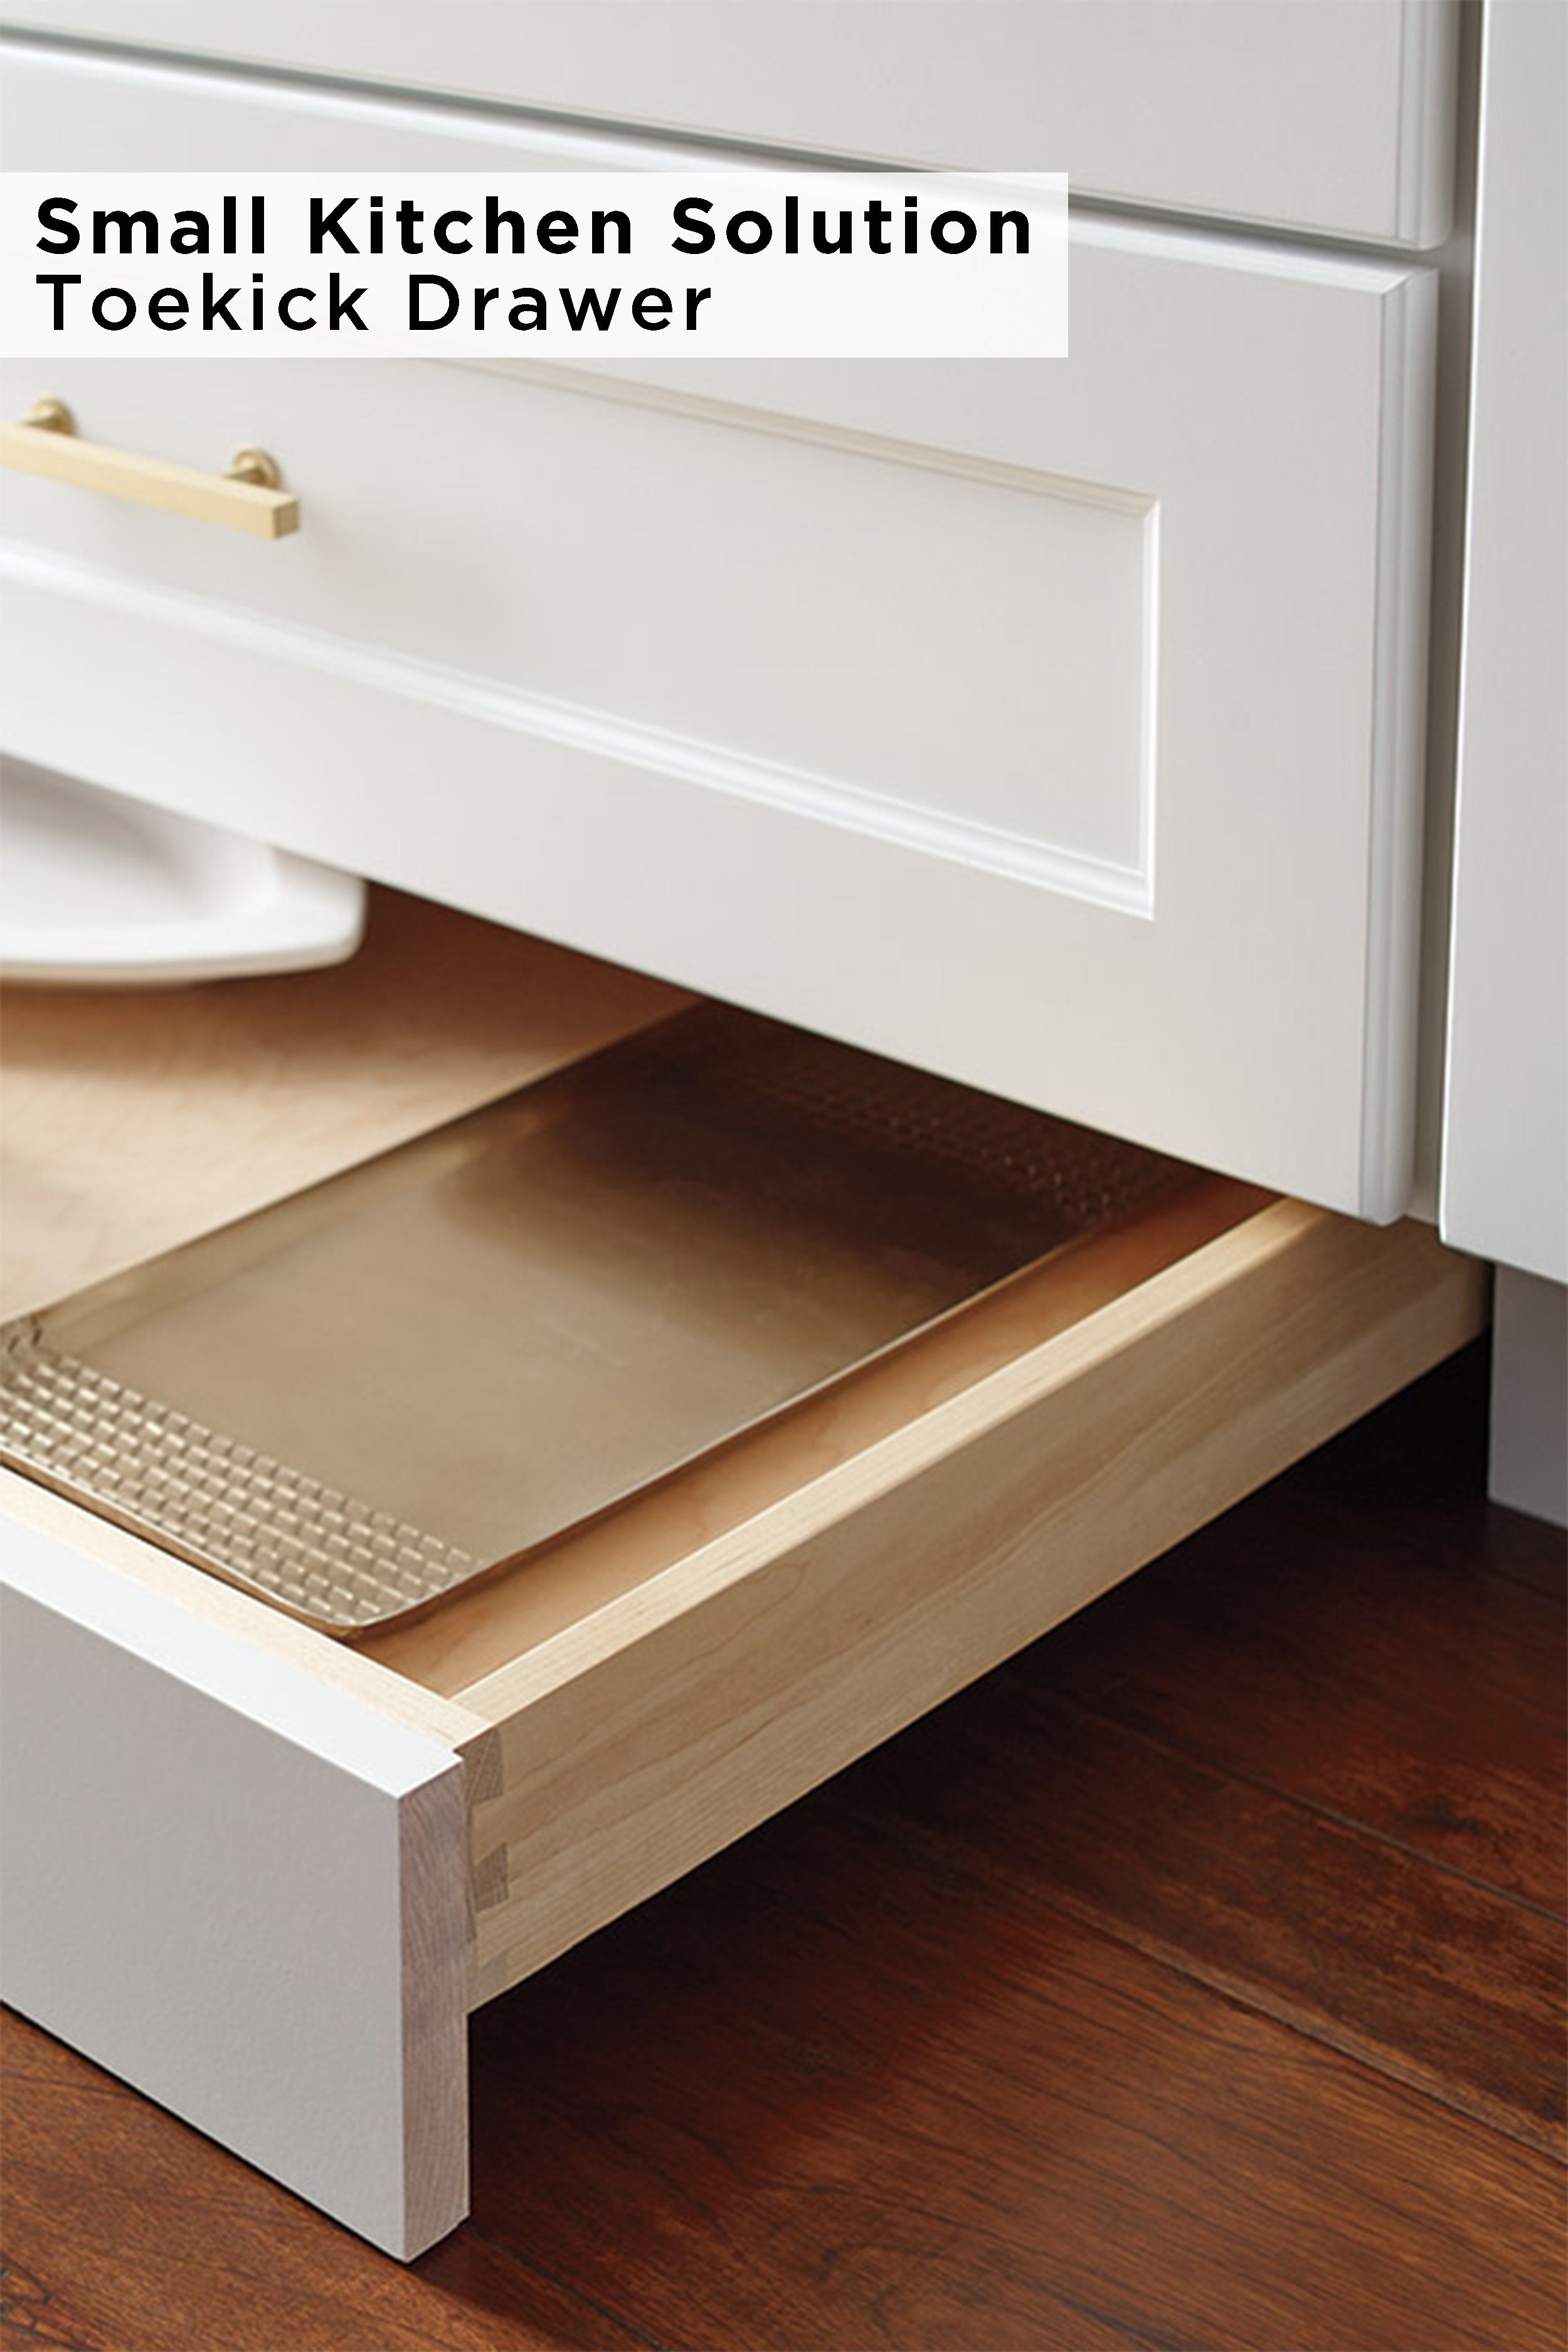 Creating More Storage Is An Easy Way To Add Appeal And Value To Your Home Make The Most Of Your Kitch Toe Kick Drawer Omega Cabinetry Small Kitchen Solutions